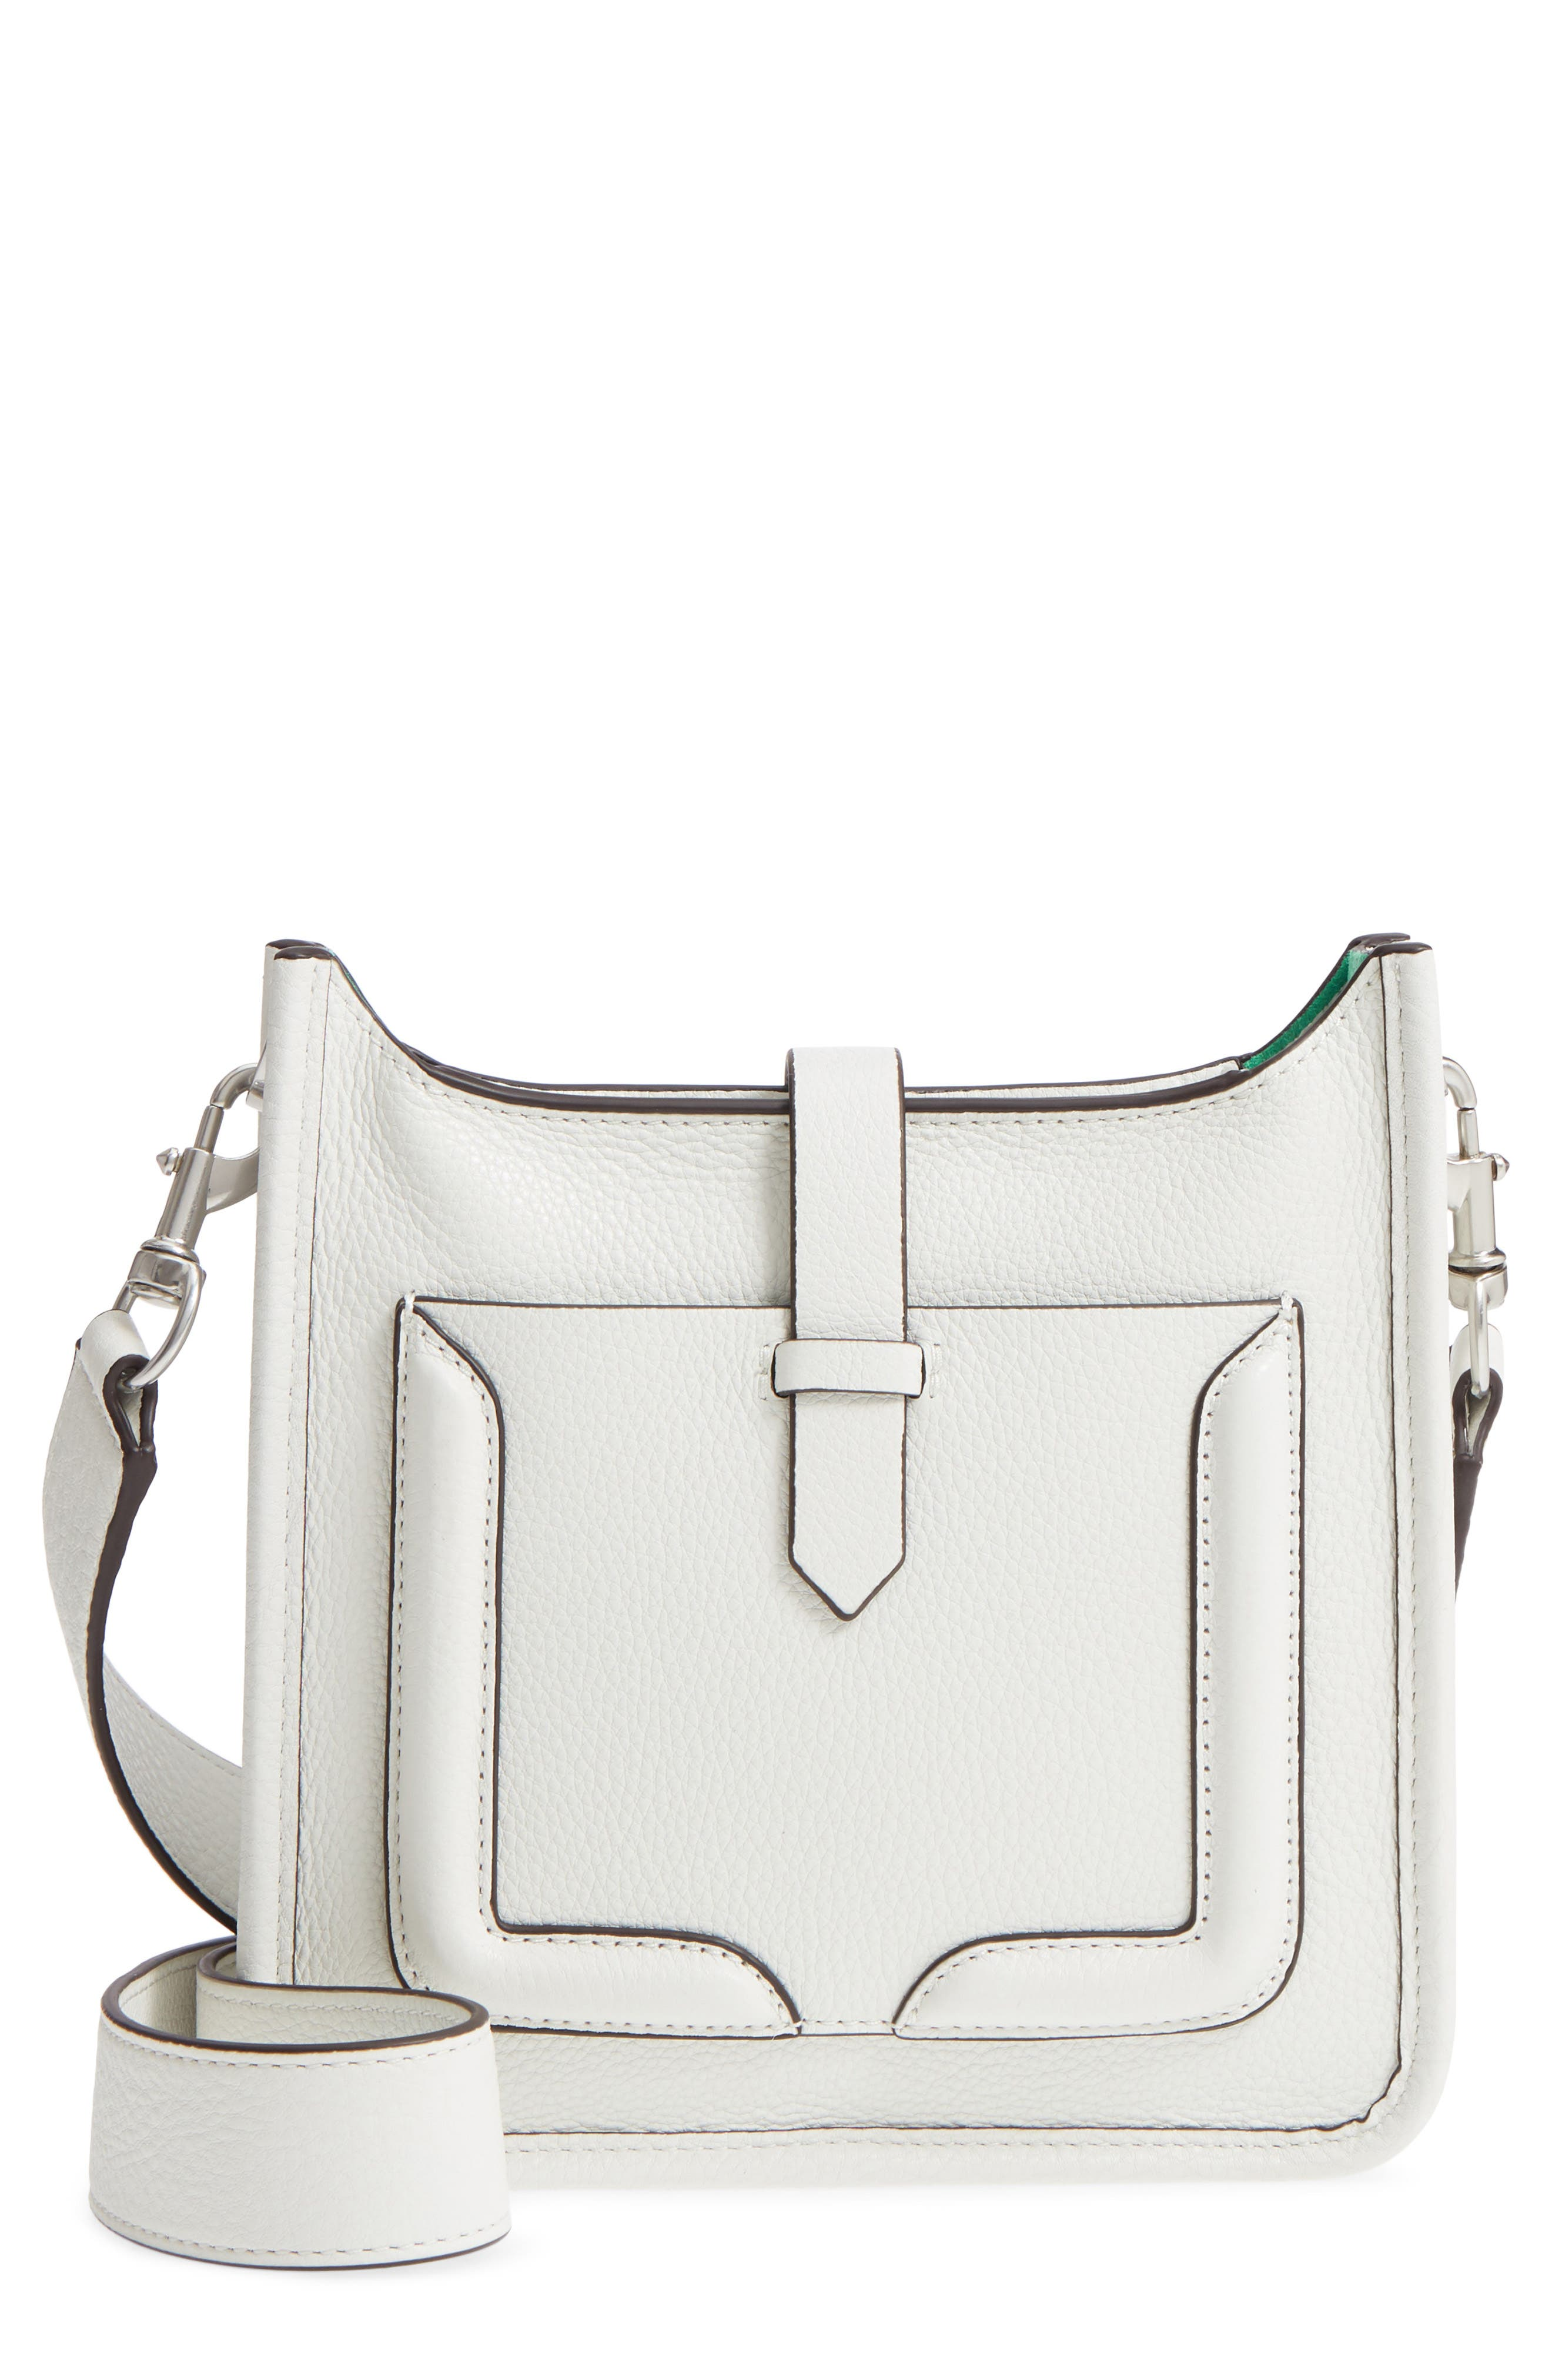 Mini Unlined Leather Feed Bag,                             Main thumbnail 1, color,                             Bianco/ Green